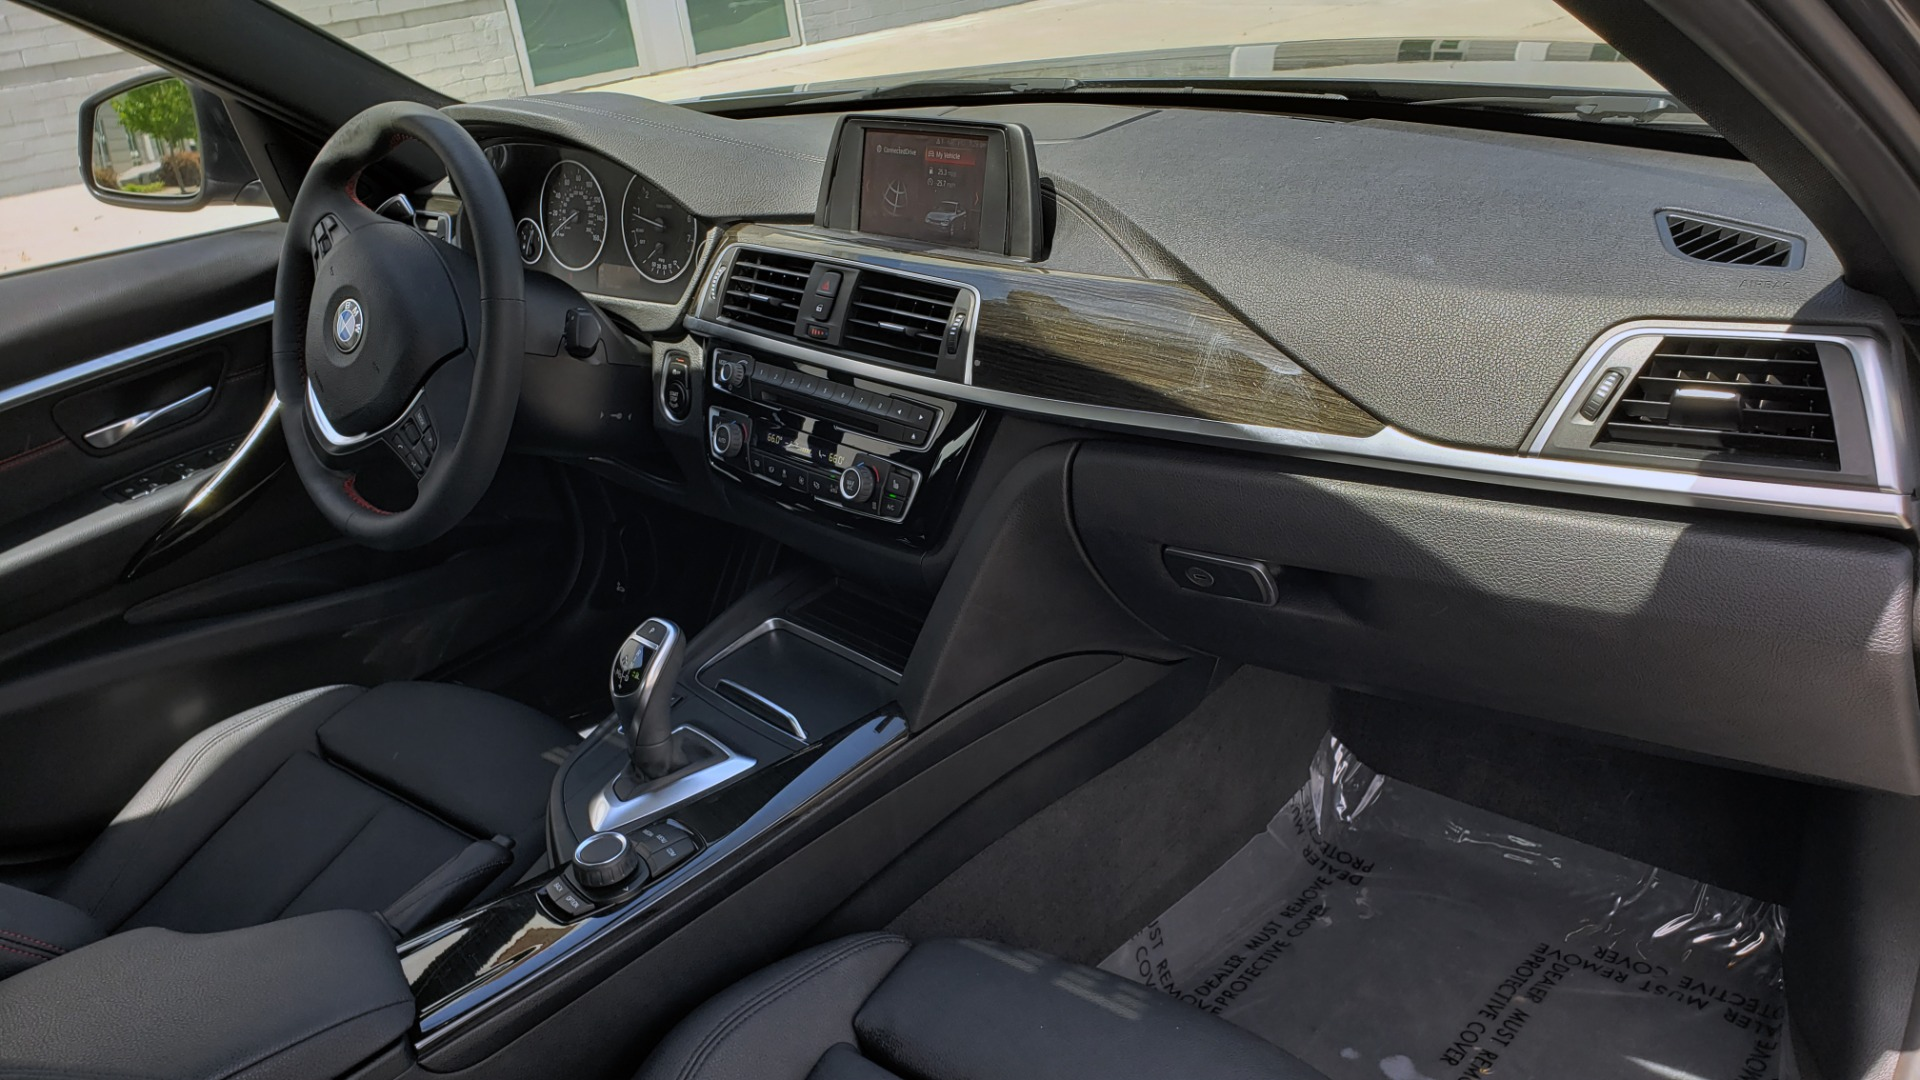 Used 2018 BMW 3 SERIES 330I XDRIVE / CONV PKG / SUNROOF / SPORT STS / HTD STS / REARVIEW for sale $28,495 at Formula Imports in Charlotte NC 28227 65